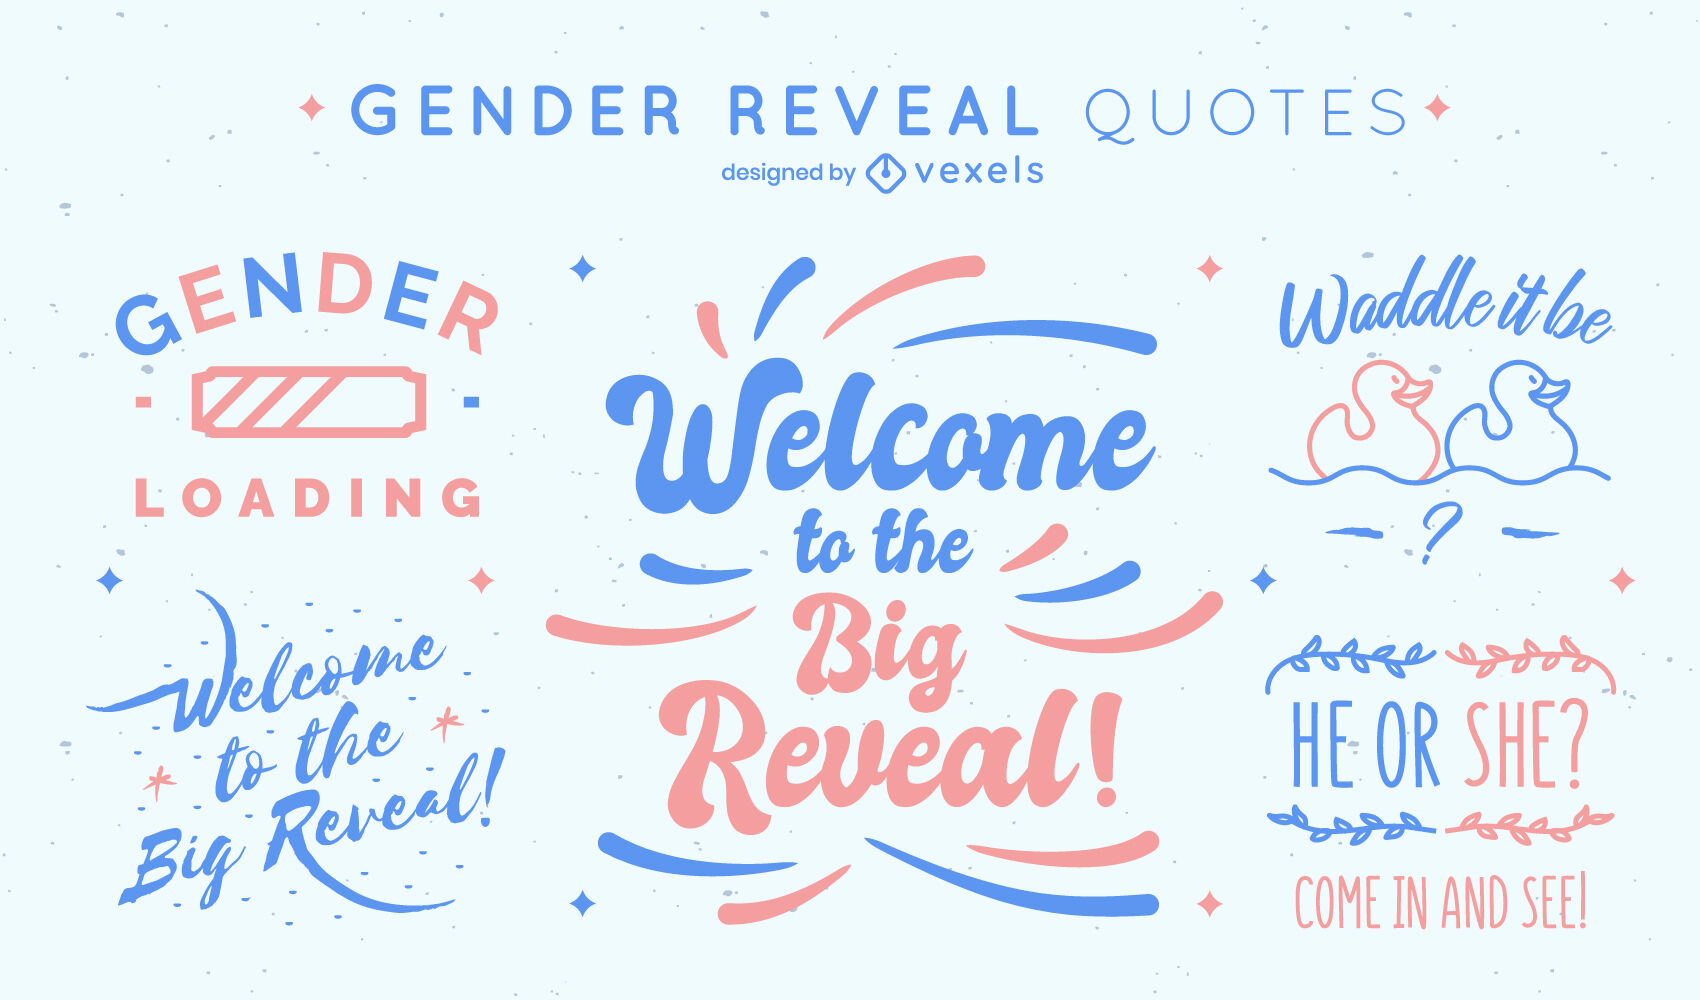 Gender reveal party quotes set